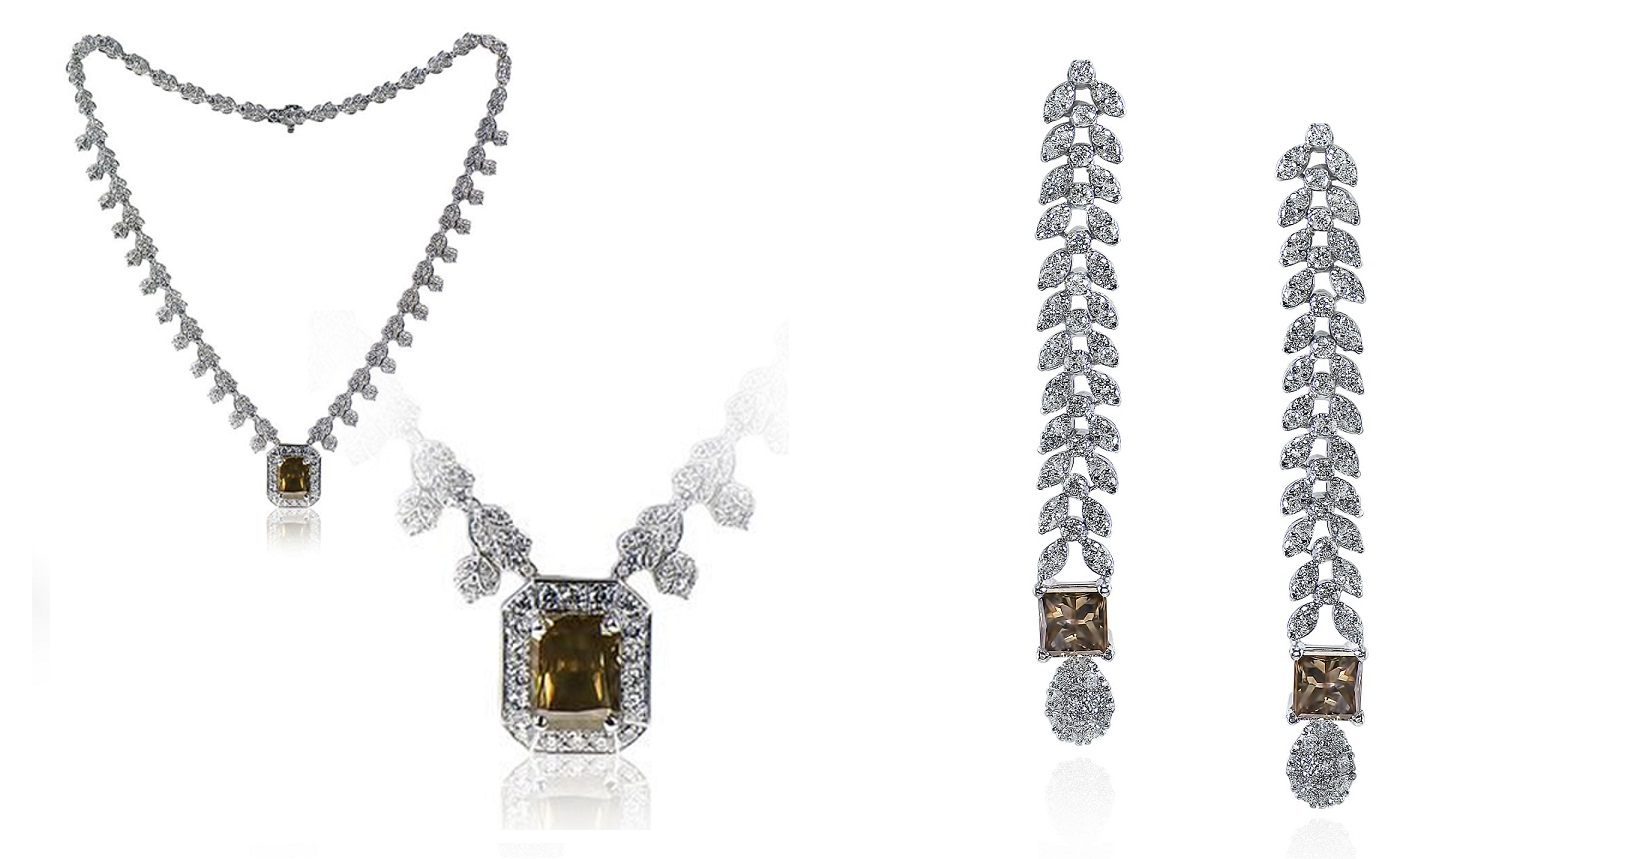 Mixed Brownish Green Diamond Necklace & Earrings Set (27.82ct TW)